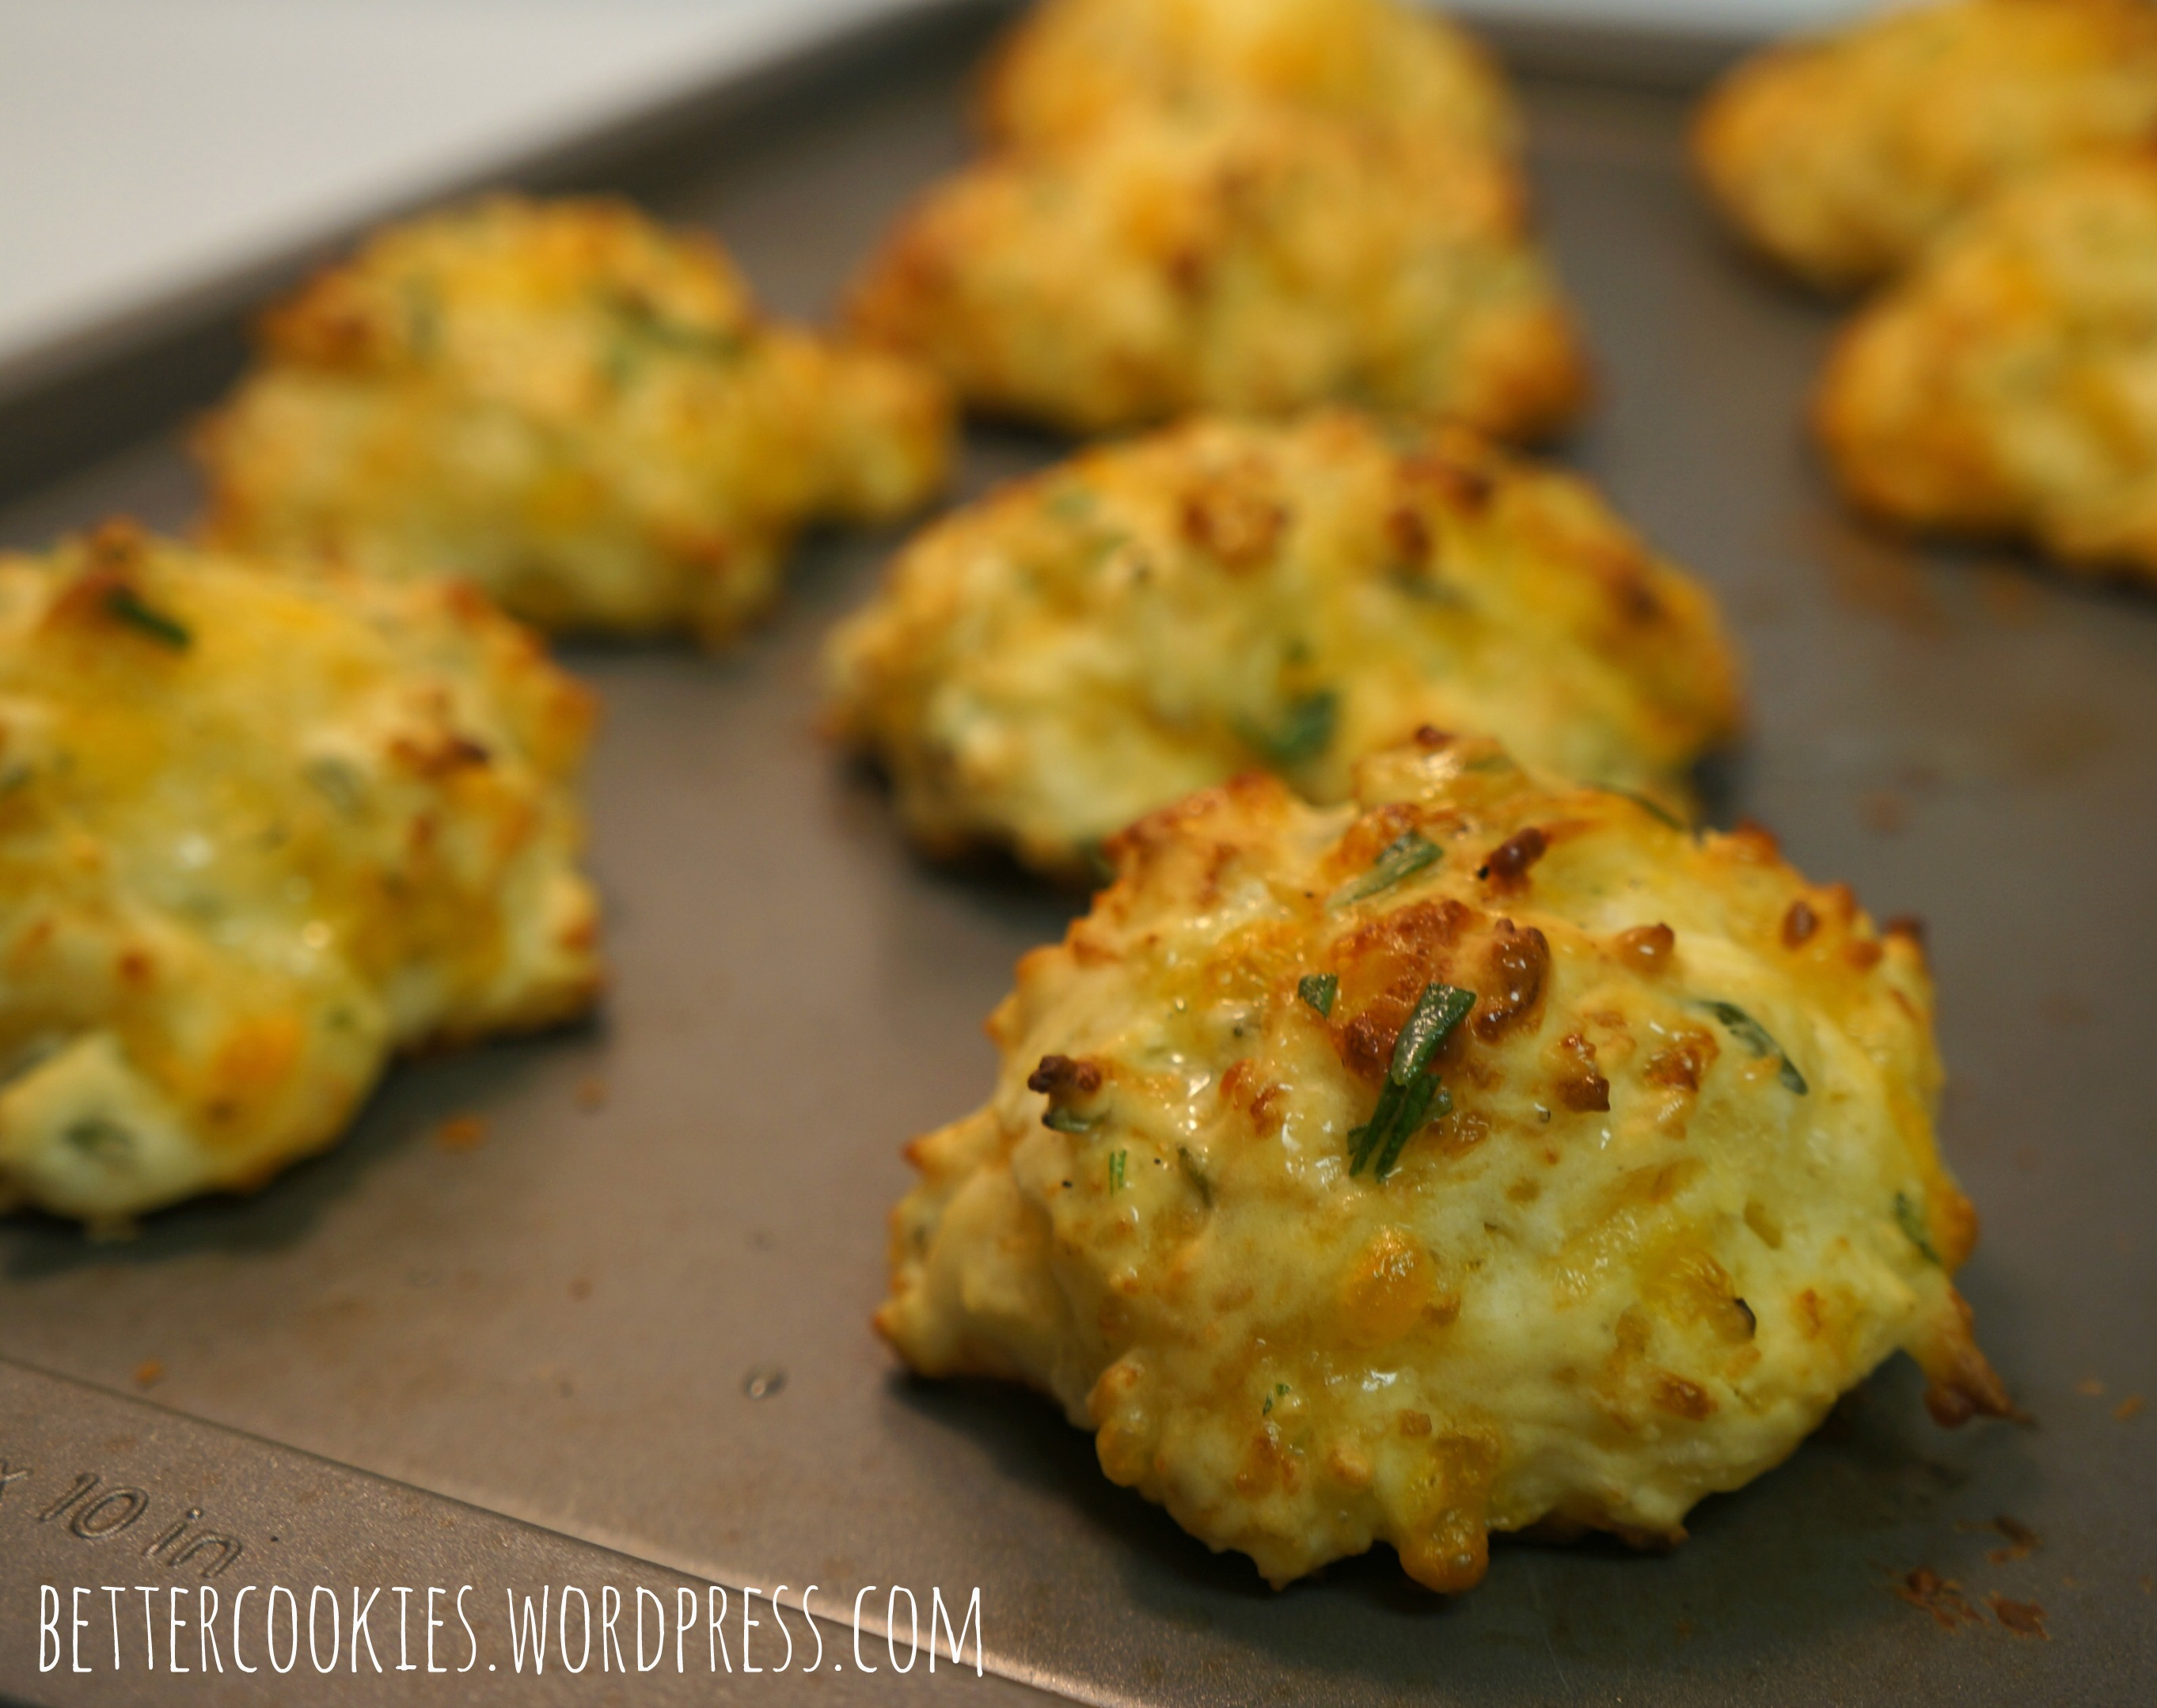 Cheddar & Rosemary Biscuits